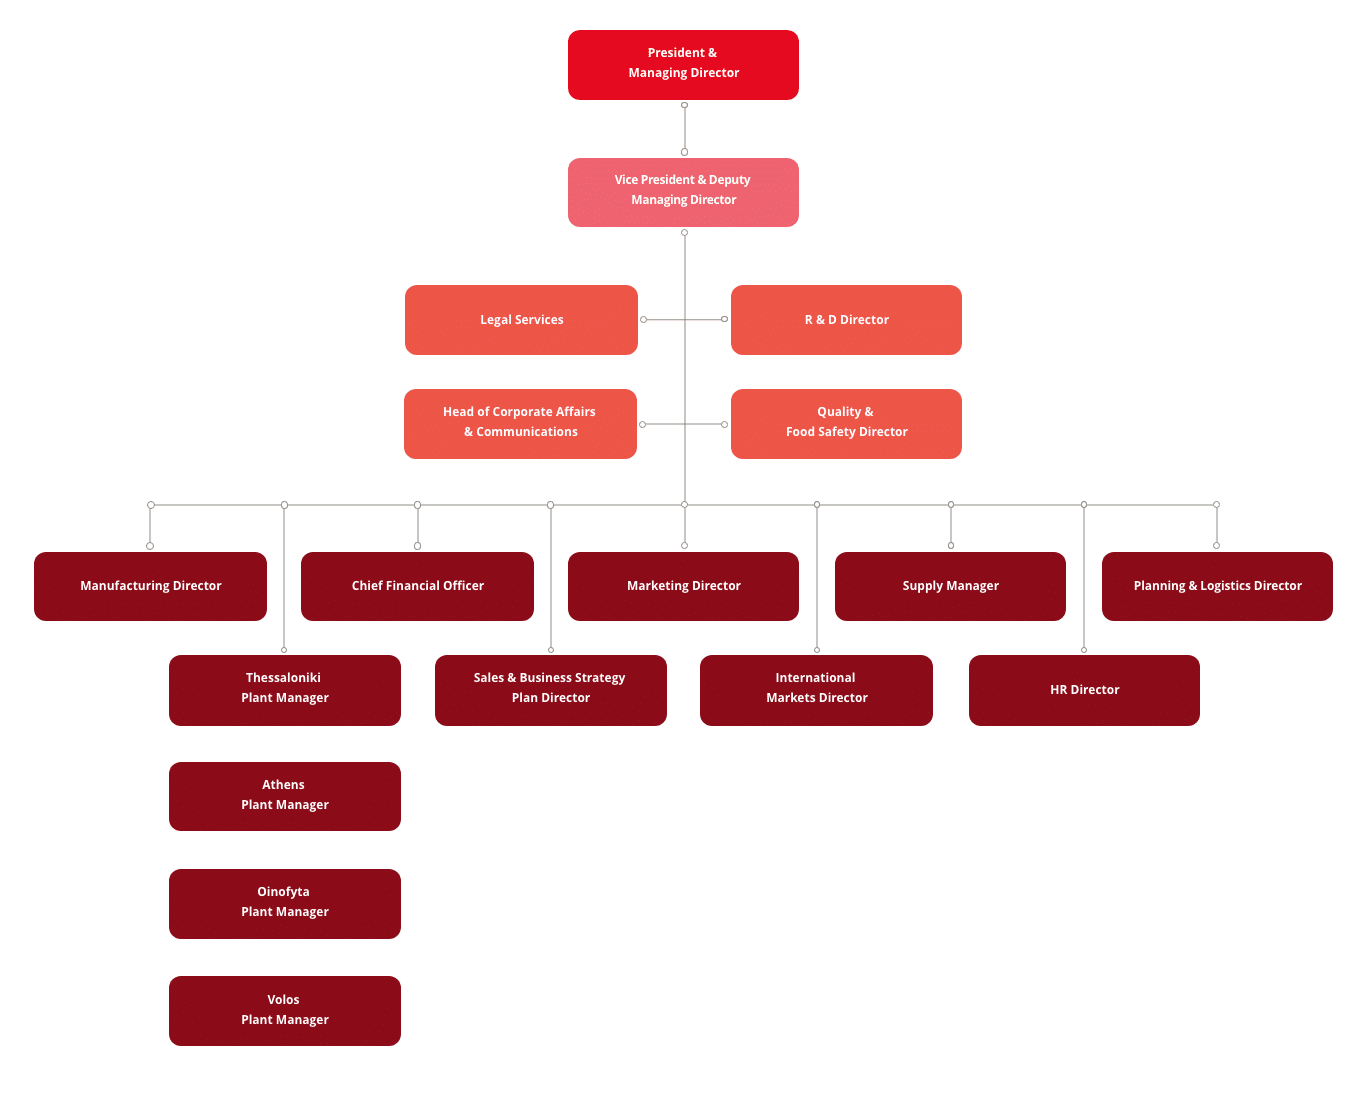 Infographic for Papadopoulou